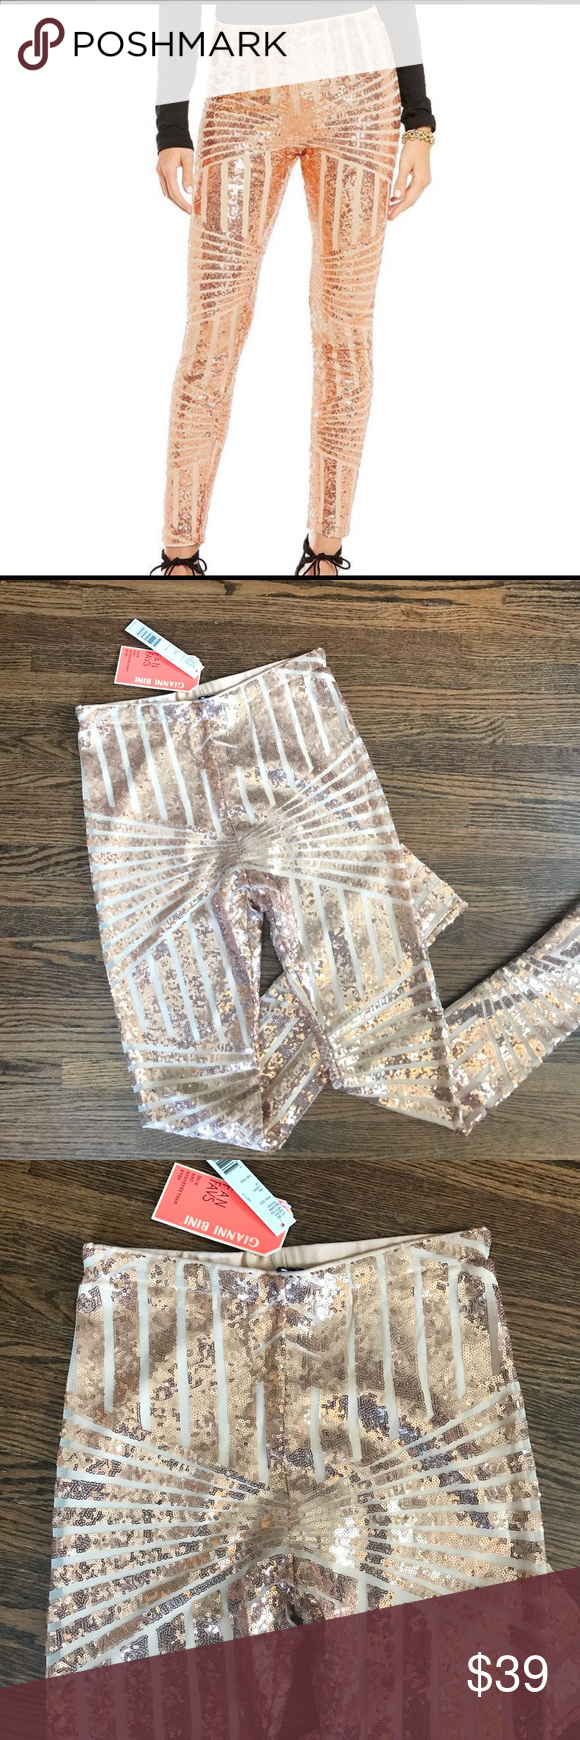 07707bf8c7158 NWT Gianni Bini Rose Gold Roxanne Sequins Leggings Wow! These are  definitely eye catching.